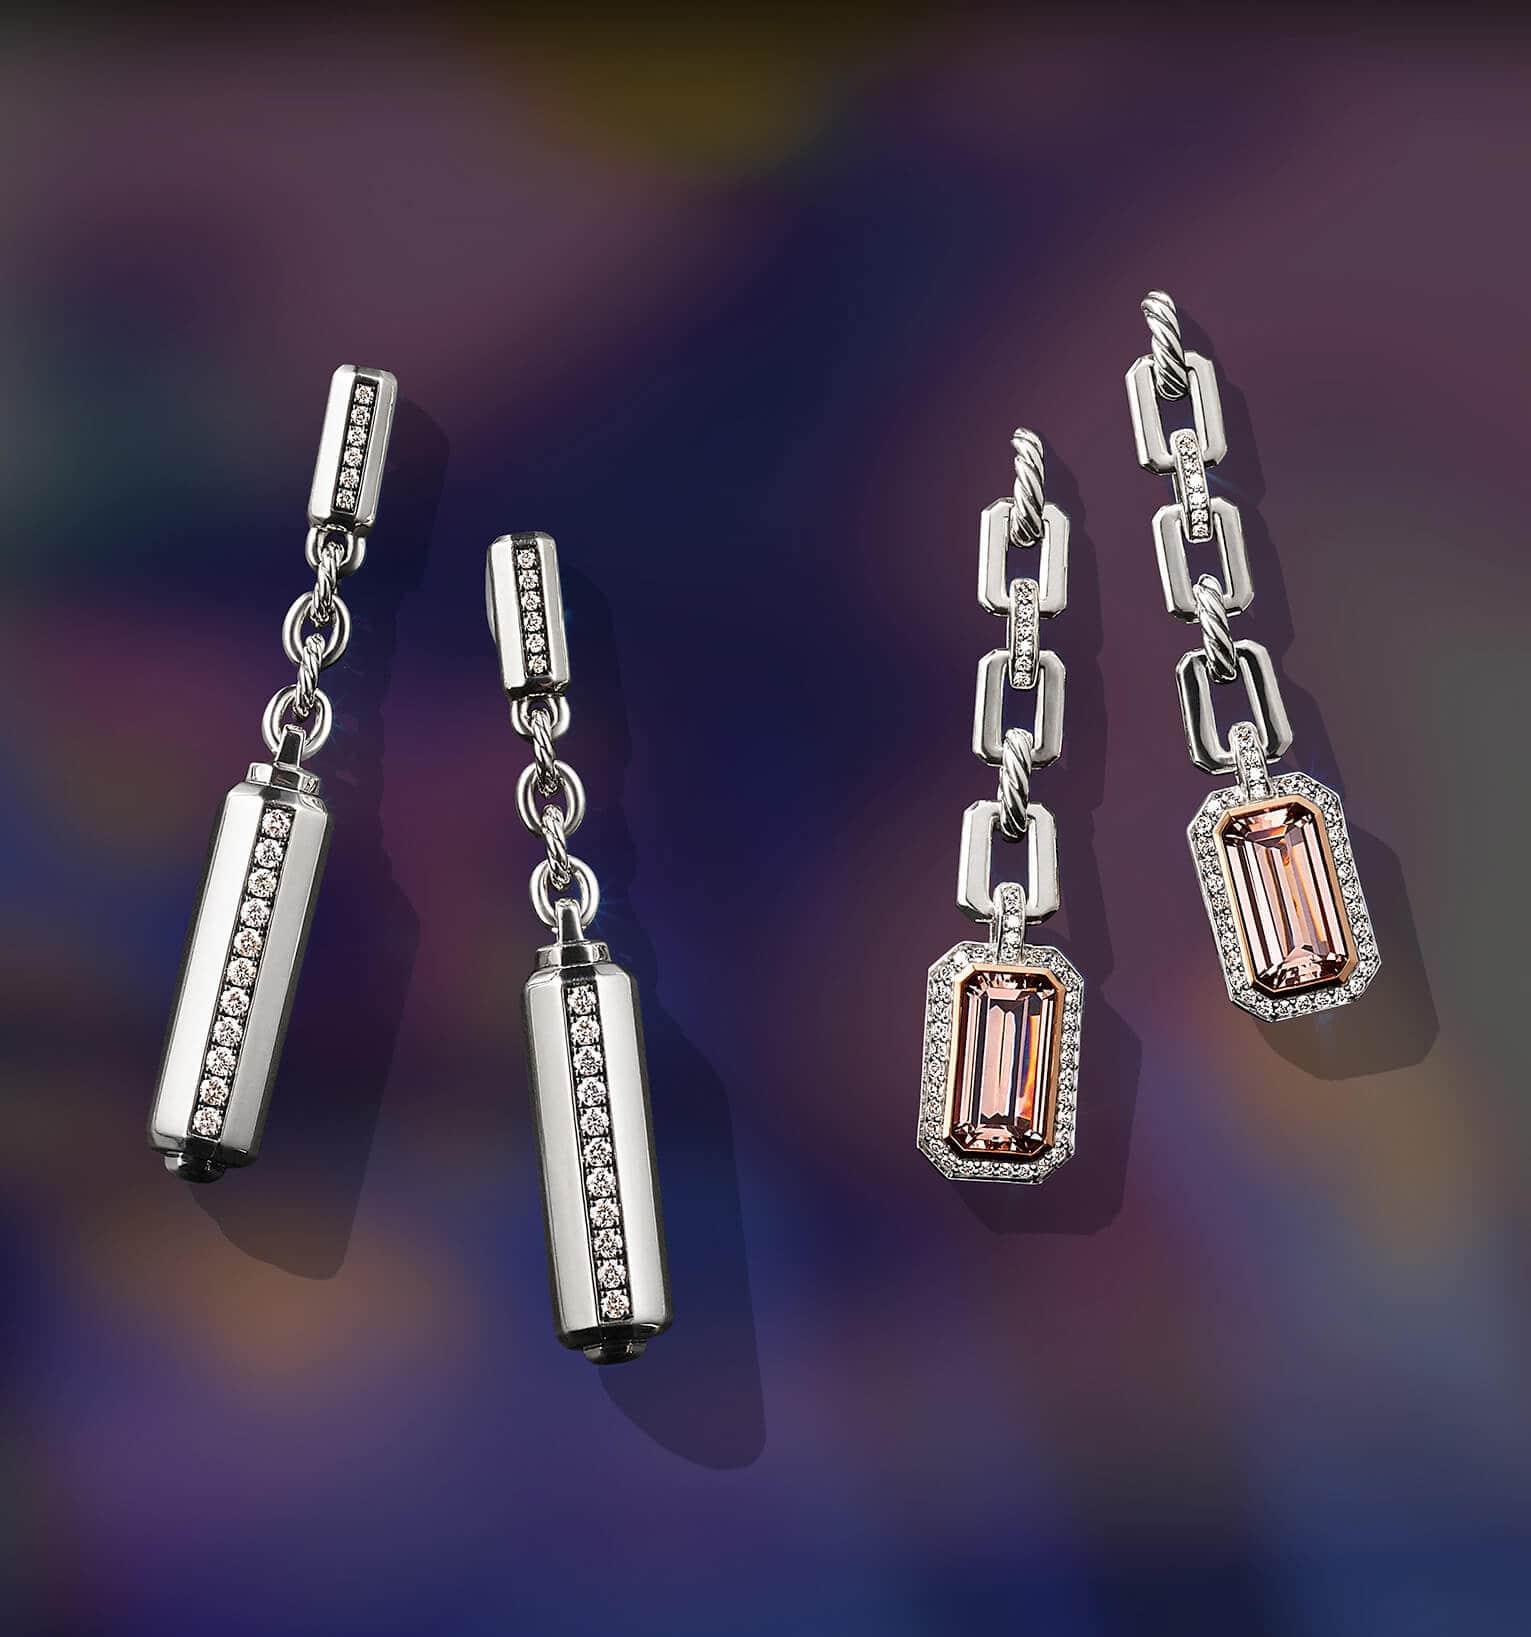 A color photograph shows two pairs of David Yurman drop earrings from the Lexington and Stax collections in front of an illuminated blue-and-green backdrop. The women's earrings are crafted from sterling silver with pavé diamonds or 18K rose gold with morganite and pavé diamonds.